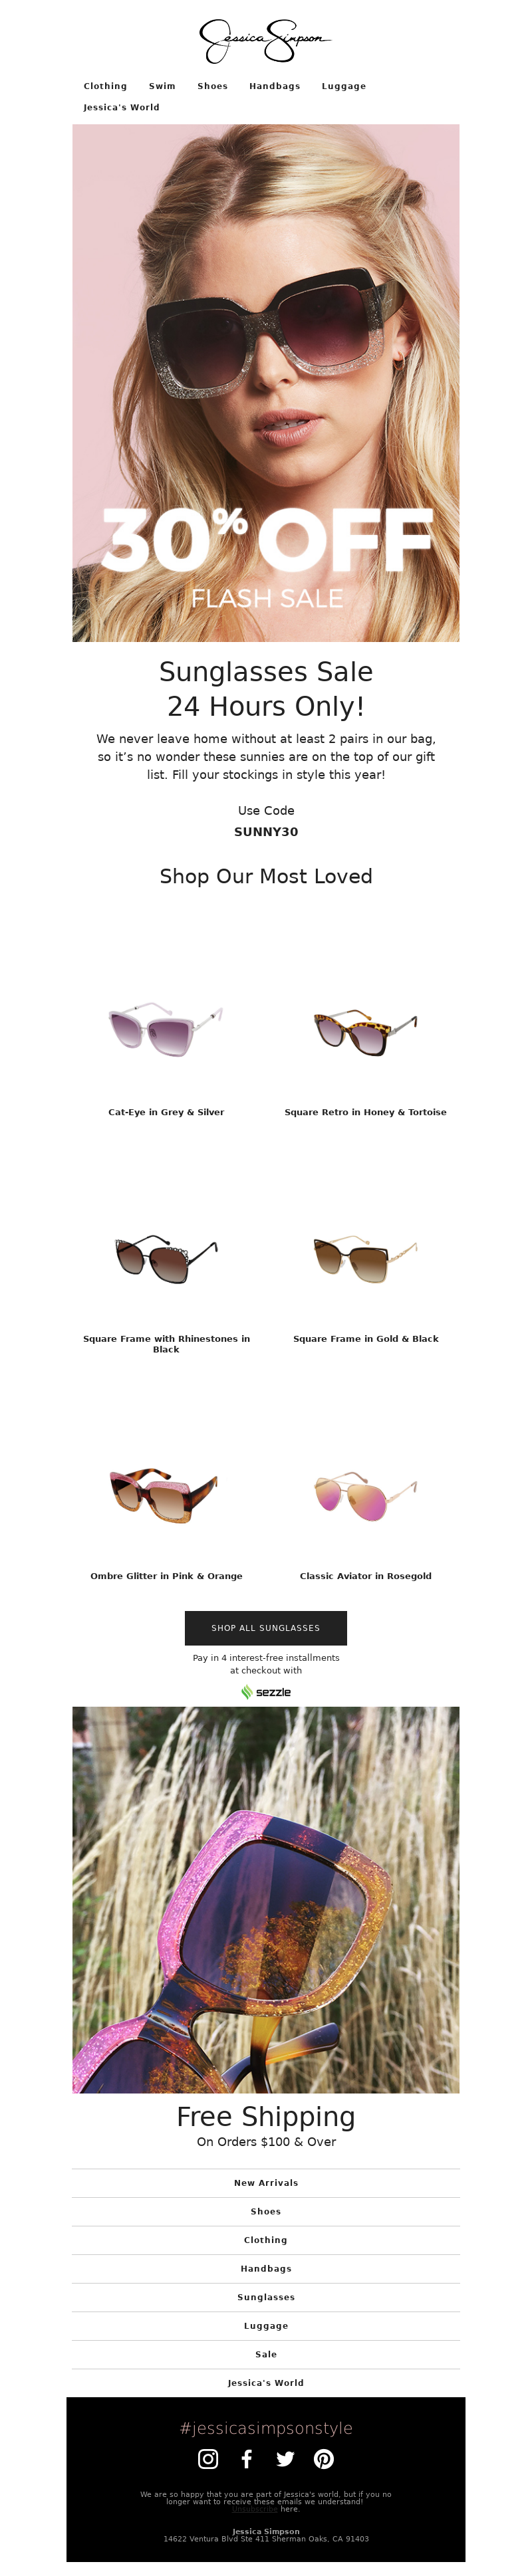 Discount email example from Jessica Simpson Sunglasses